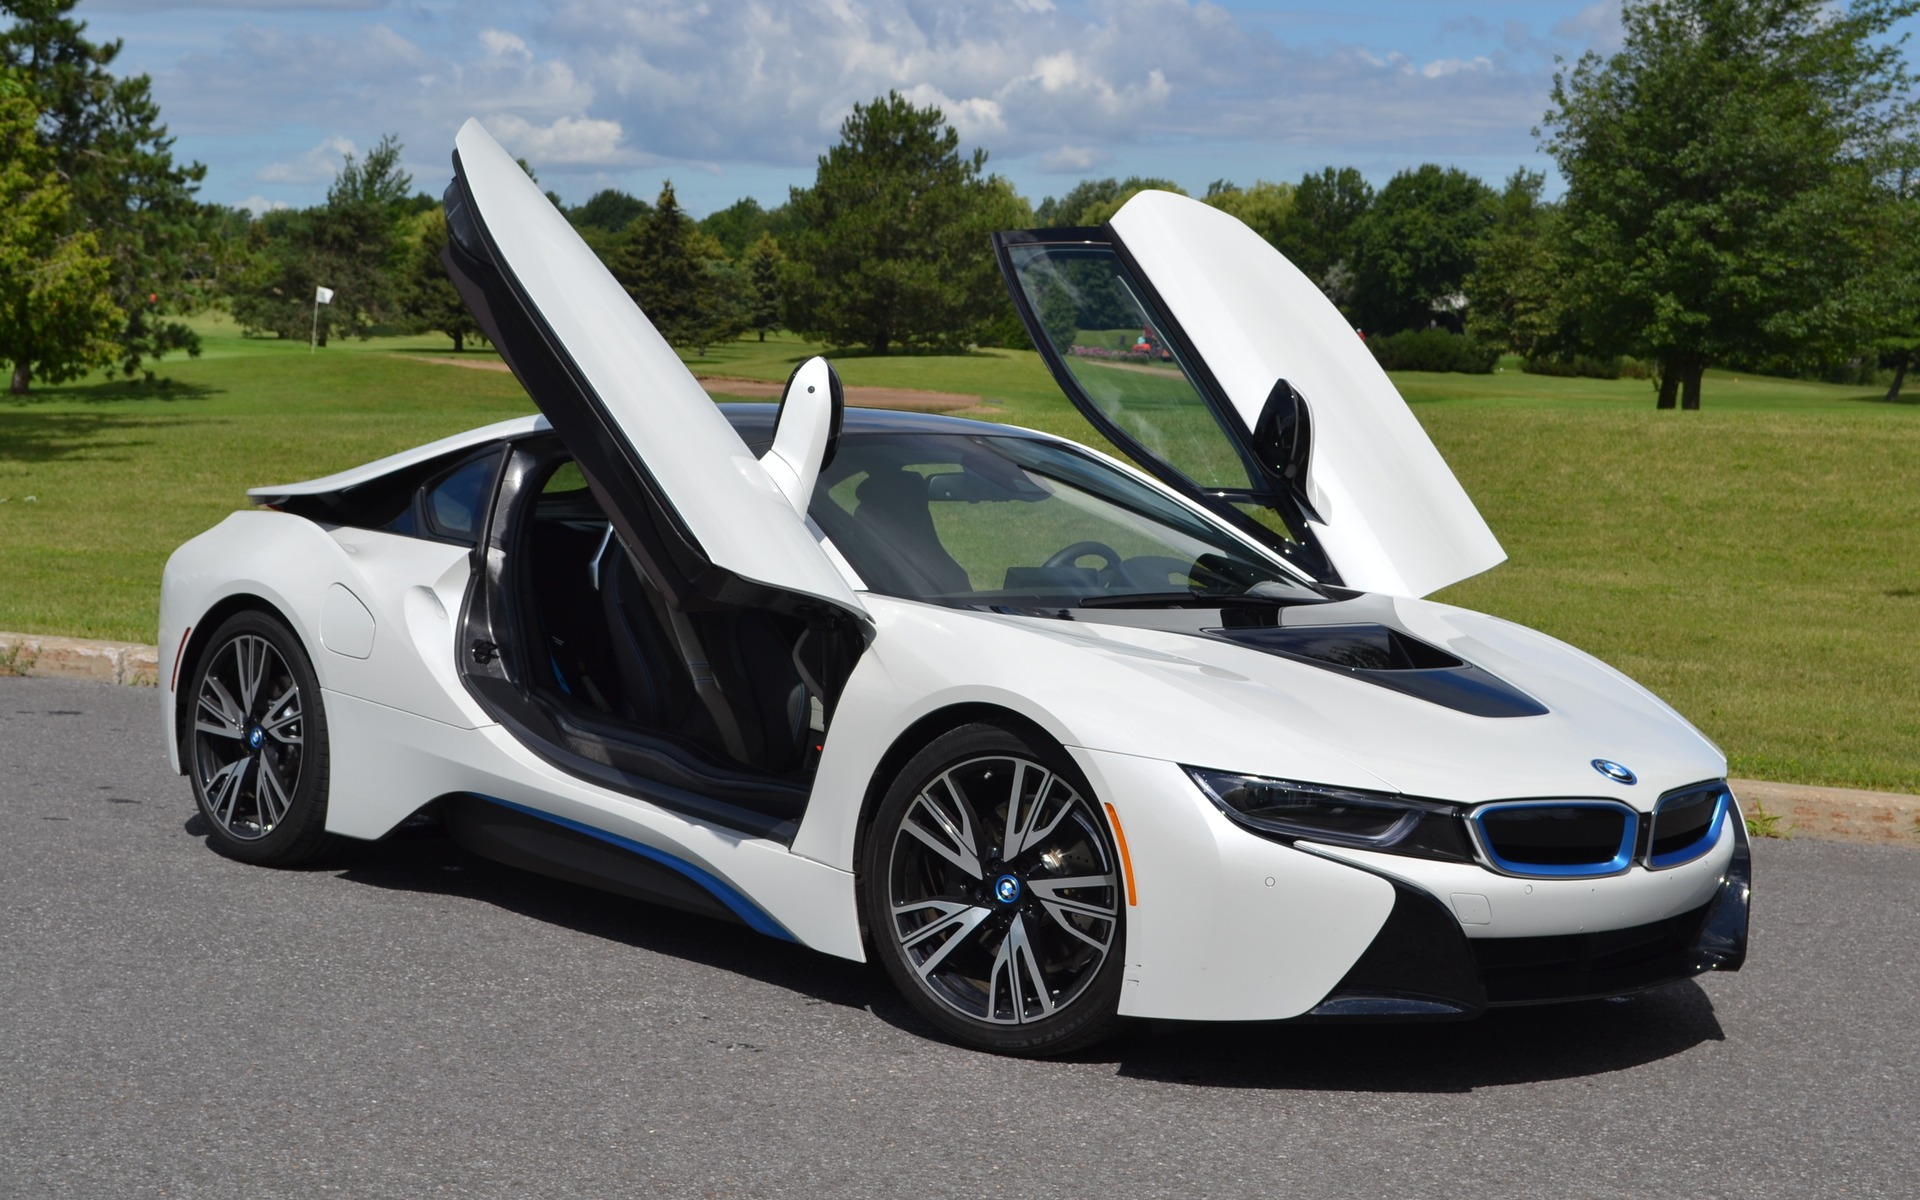 2015 Bmw I8 Nothing Short Of Spectacular The Car Guide